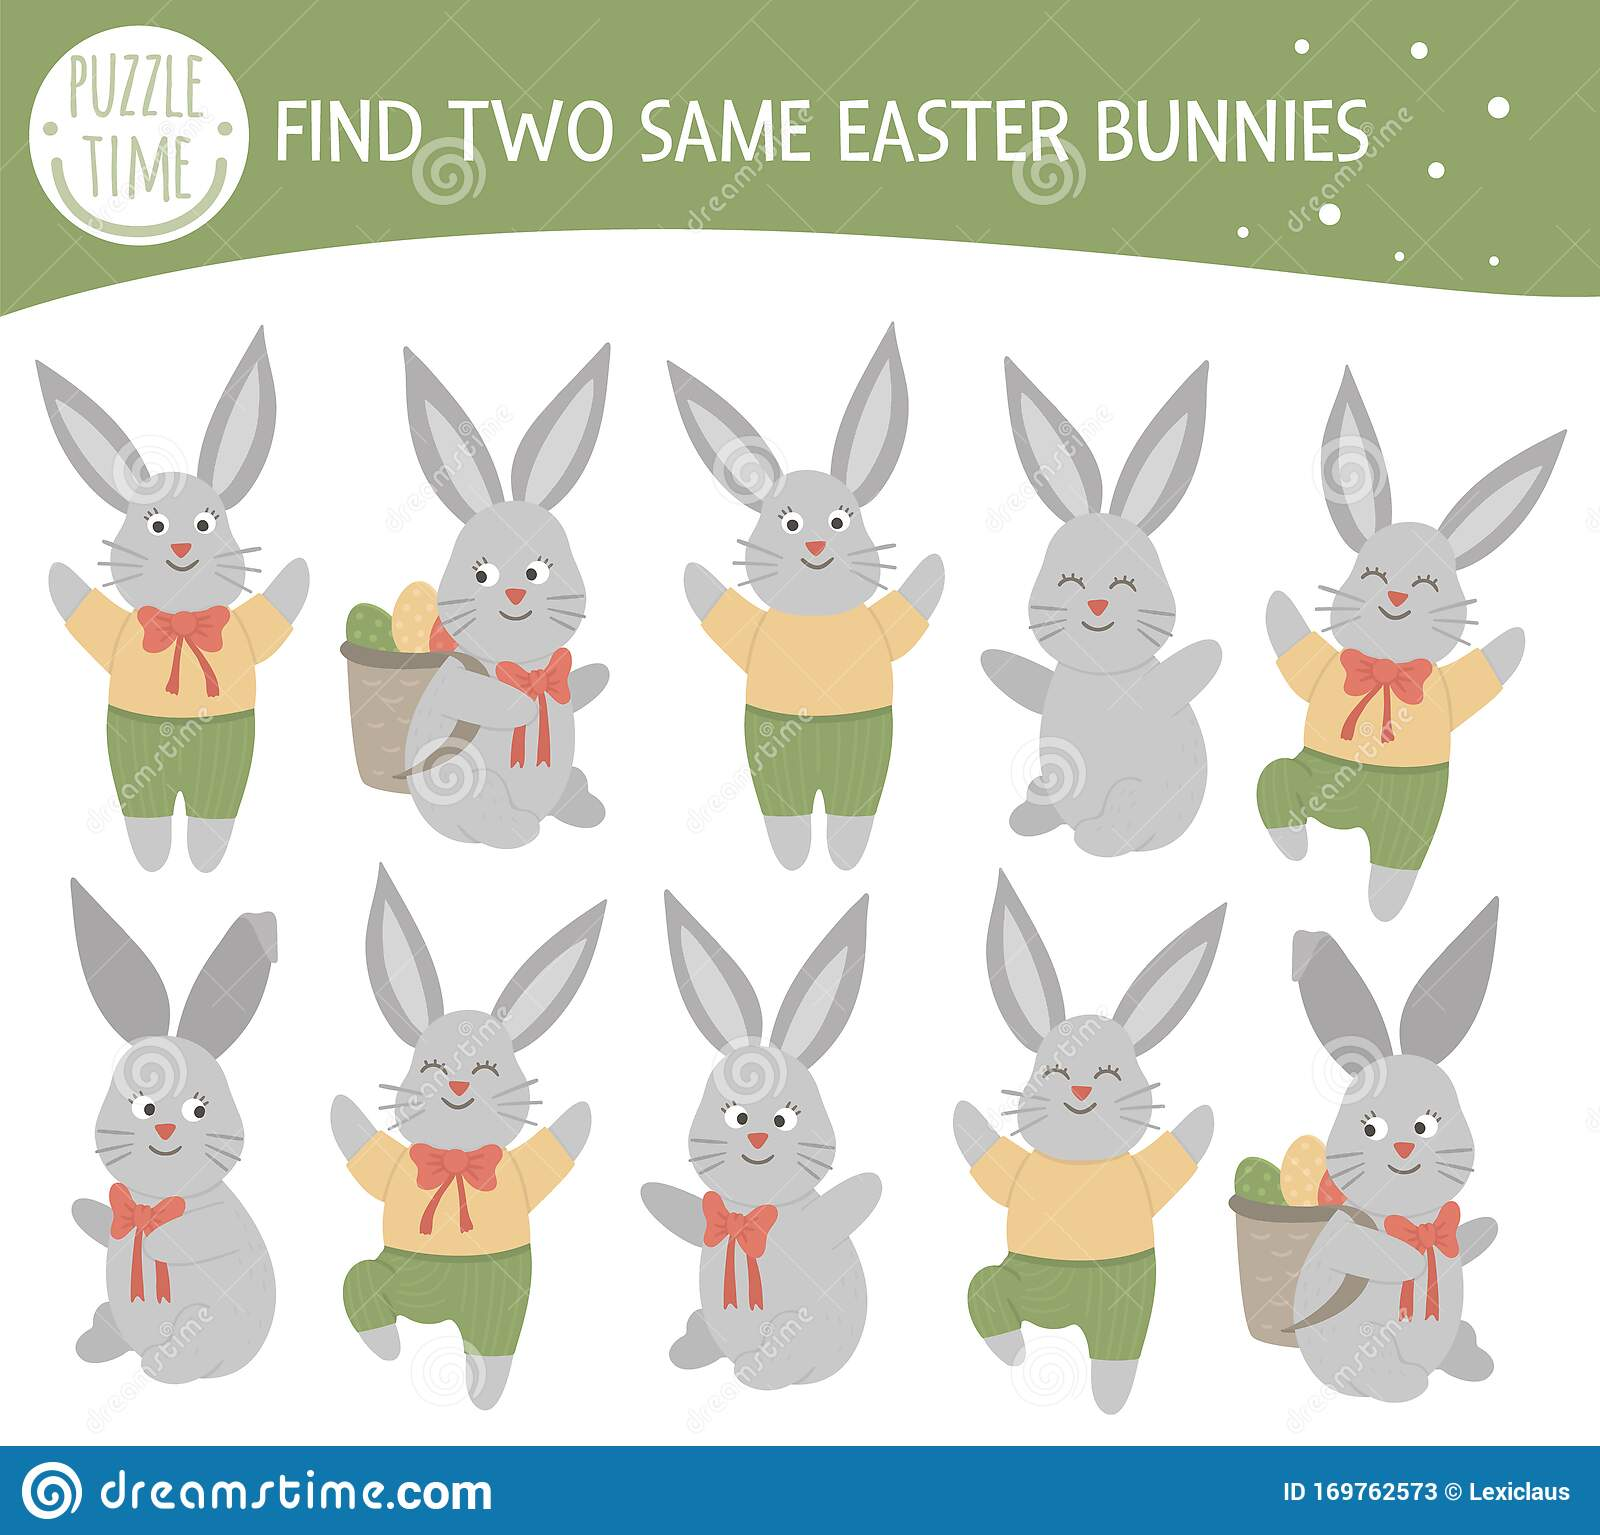 Find Two Same Bunnies Easter Matching Activity For